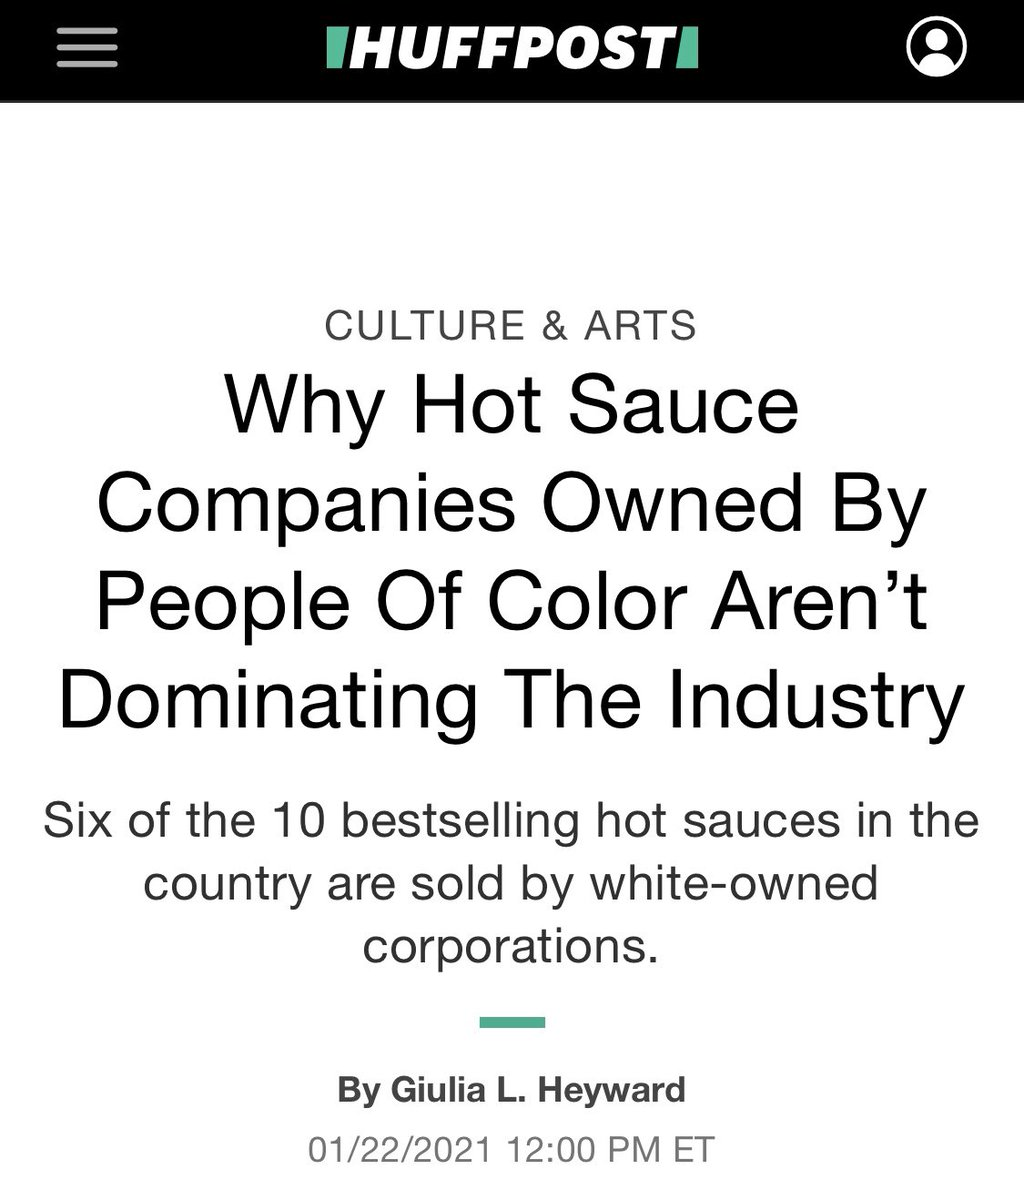 We are thrilled about our recent feature in the @HuffPost! The article is about the rise of the hot sauce industry and highlights challenges faced by minority-owned companies. @HuffPostFood #tuesdaymotivations #Foodie